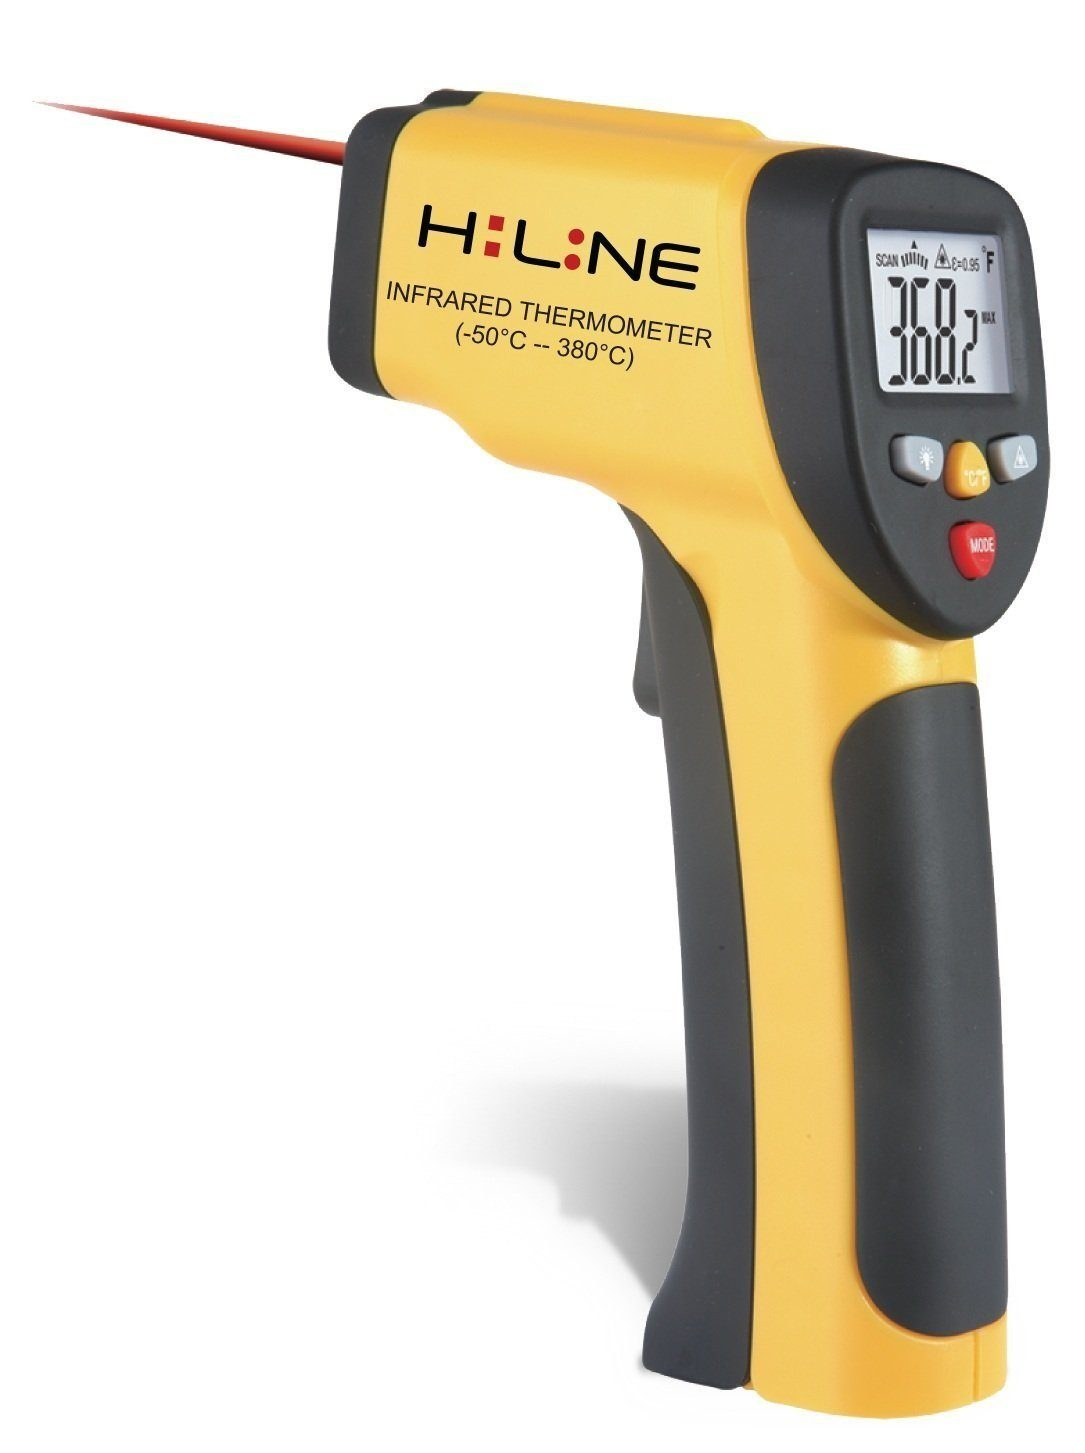 HiLine Non-Contact Handheld Infrared Thermometer with LCD Screen